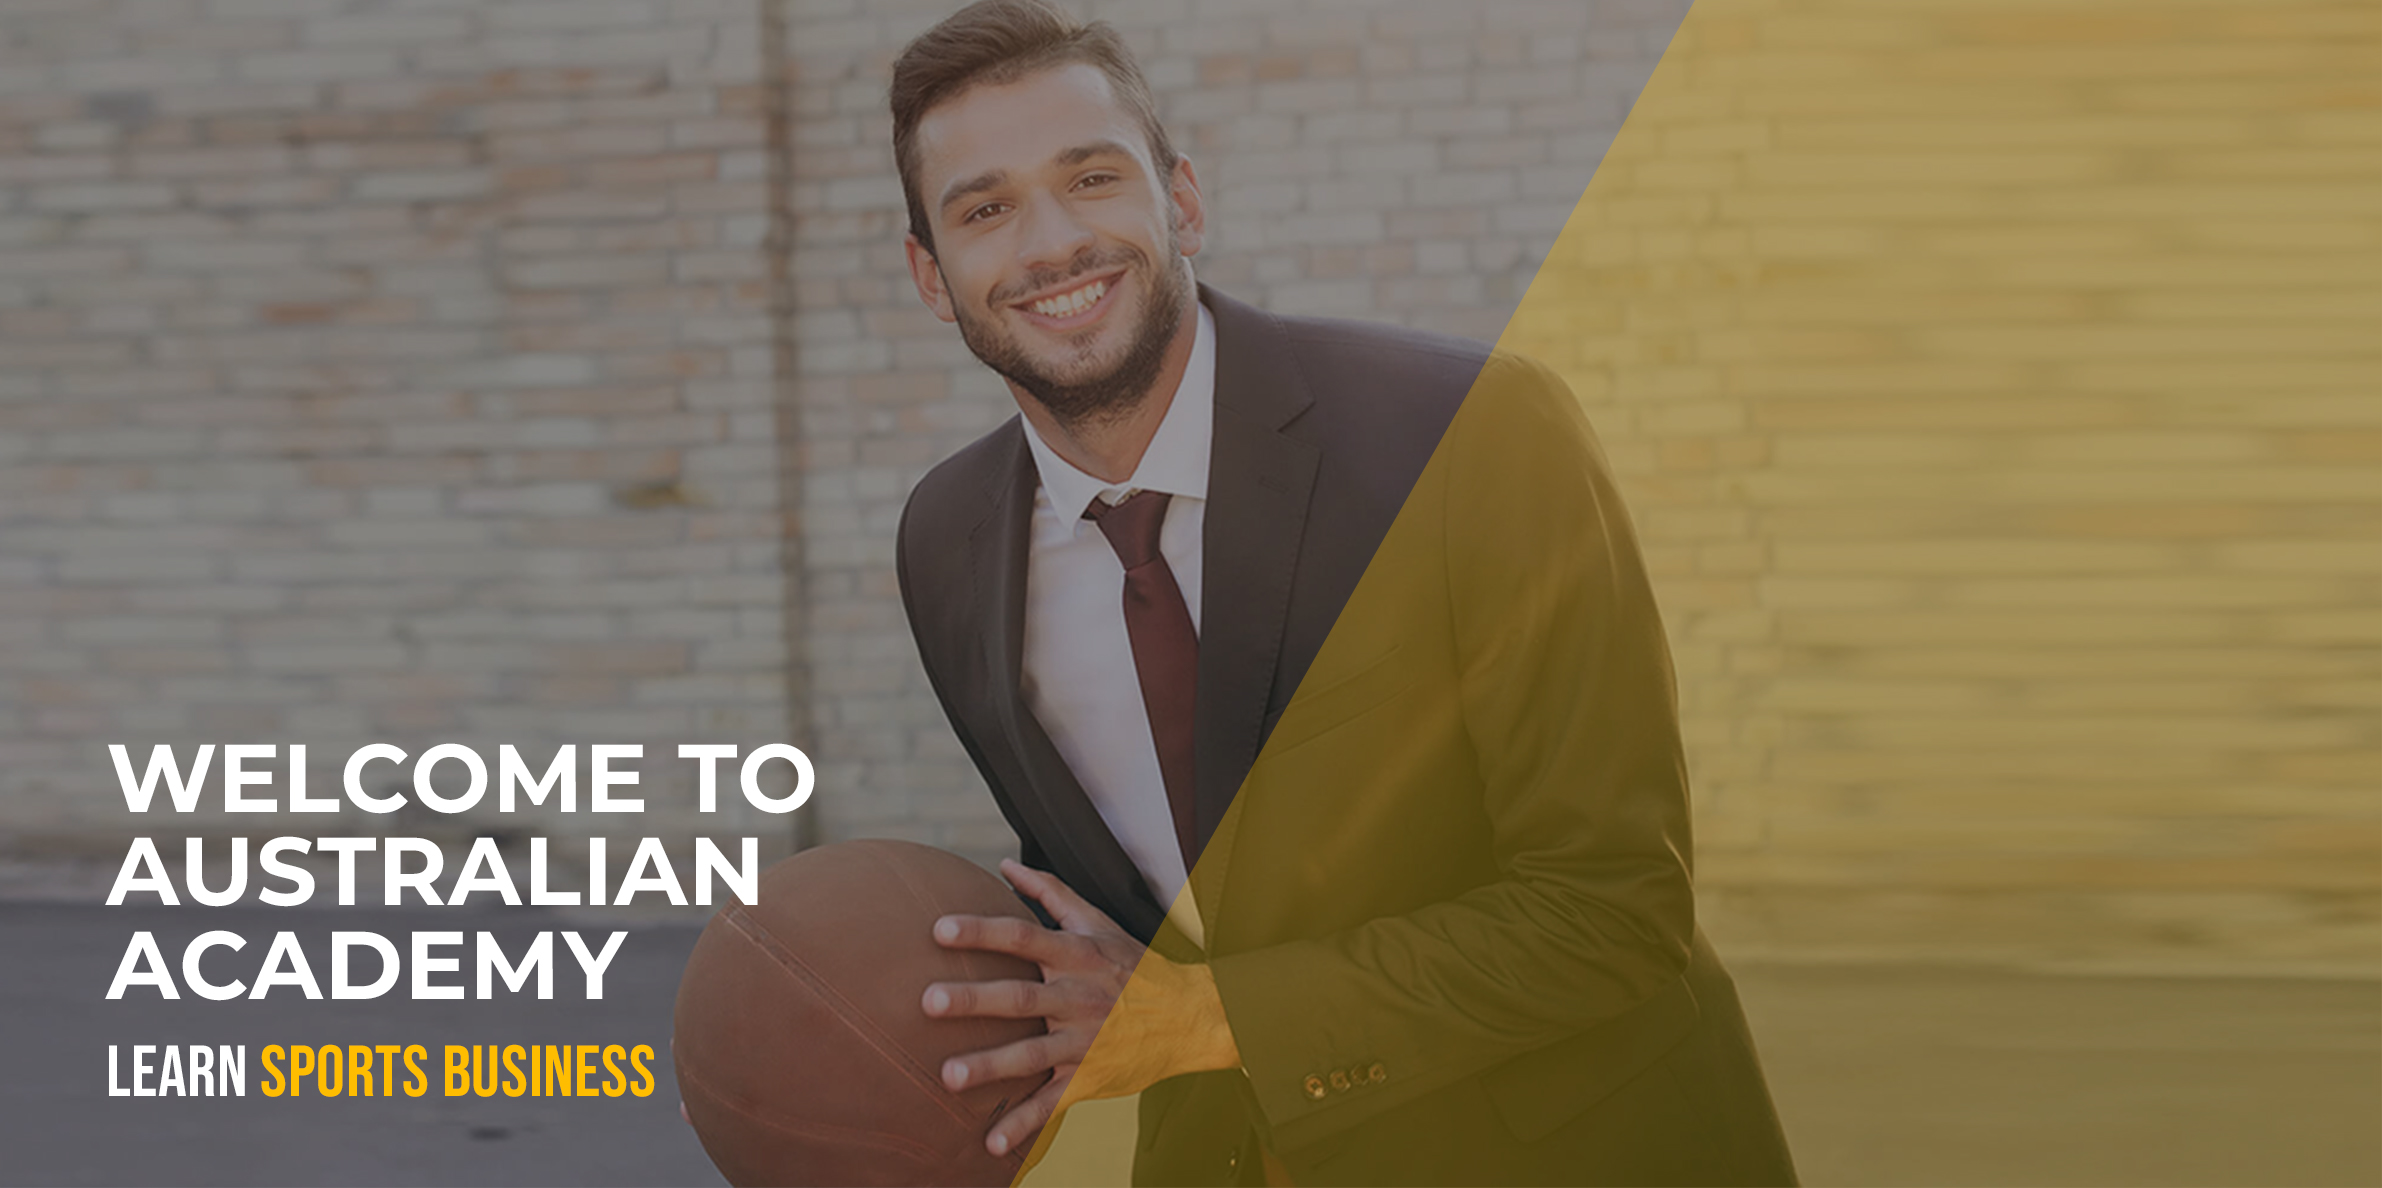 Man in suit with basketball